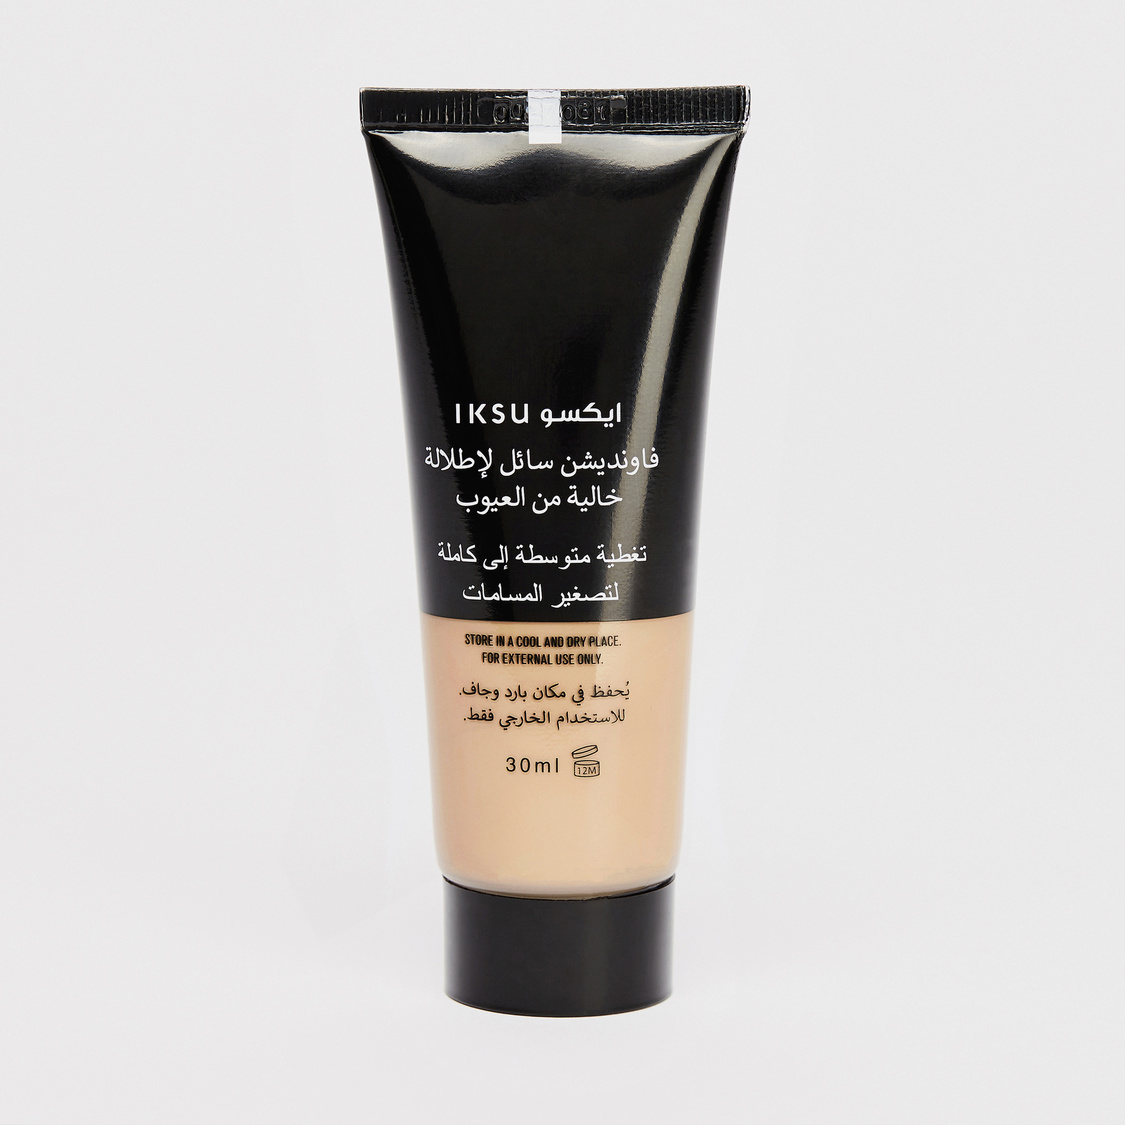 IKSU Flawless Finish Liquid Foundation